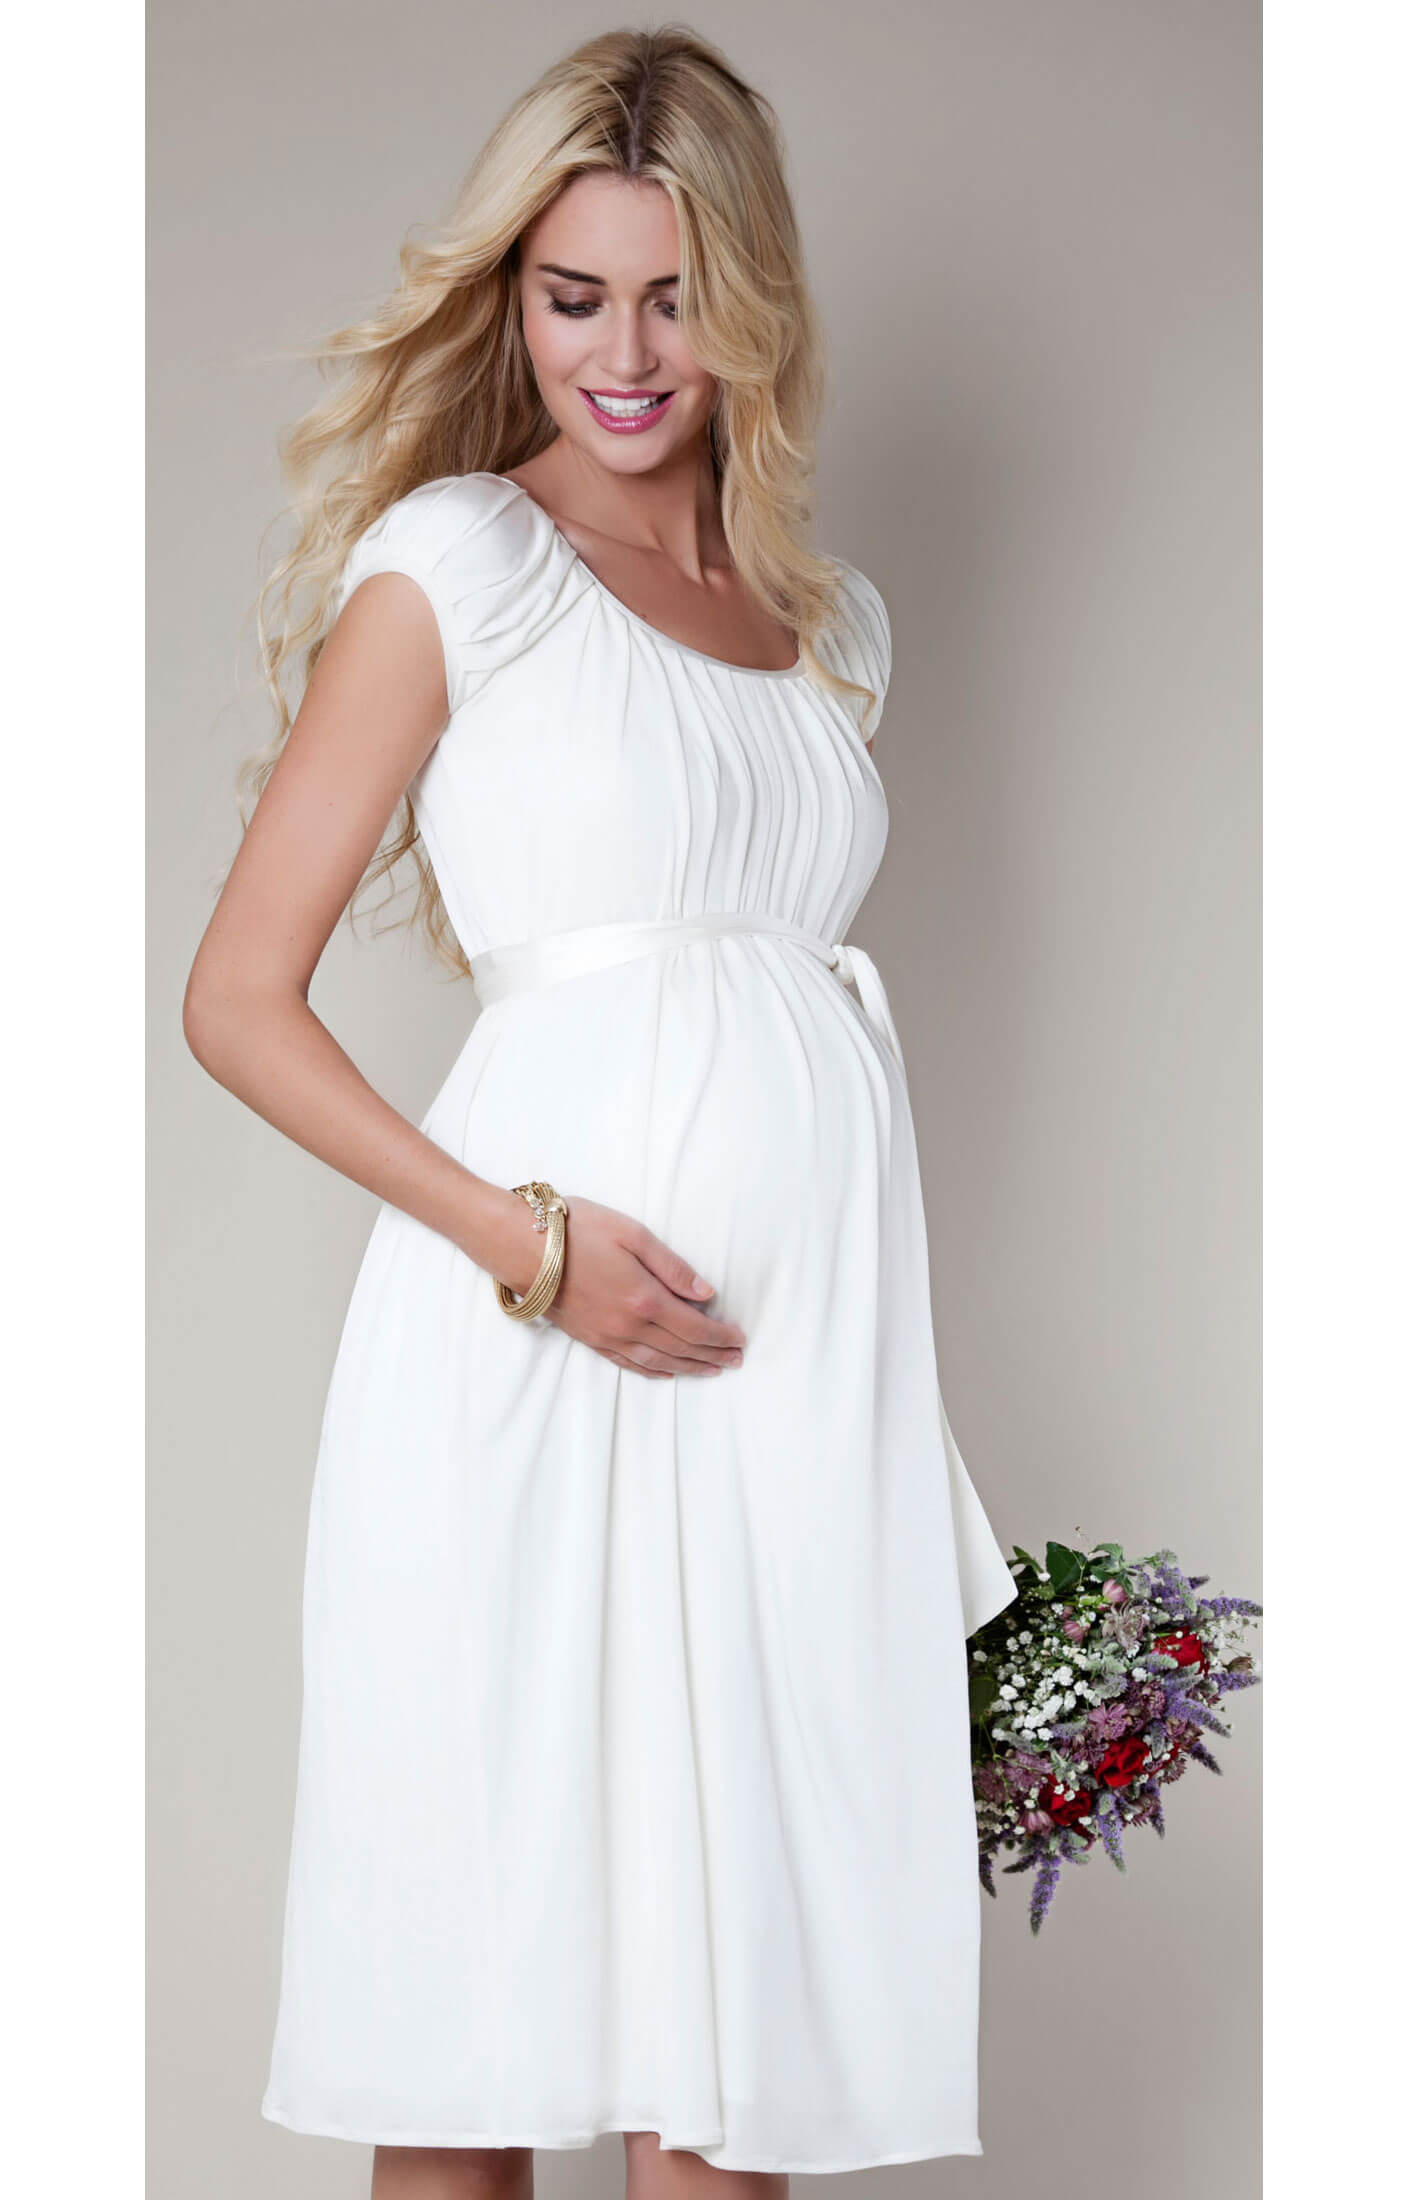 Amore wedding dresses page 159 of 473 bridesmaid dresses uk maternity bridesmaid dresses canada 9 ombrellifo Image collections